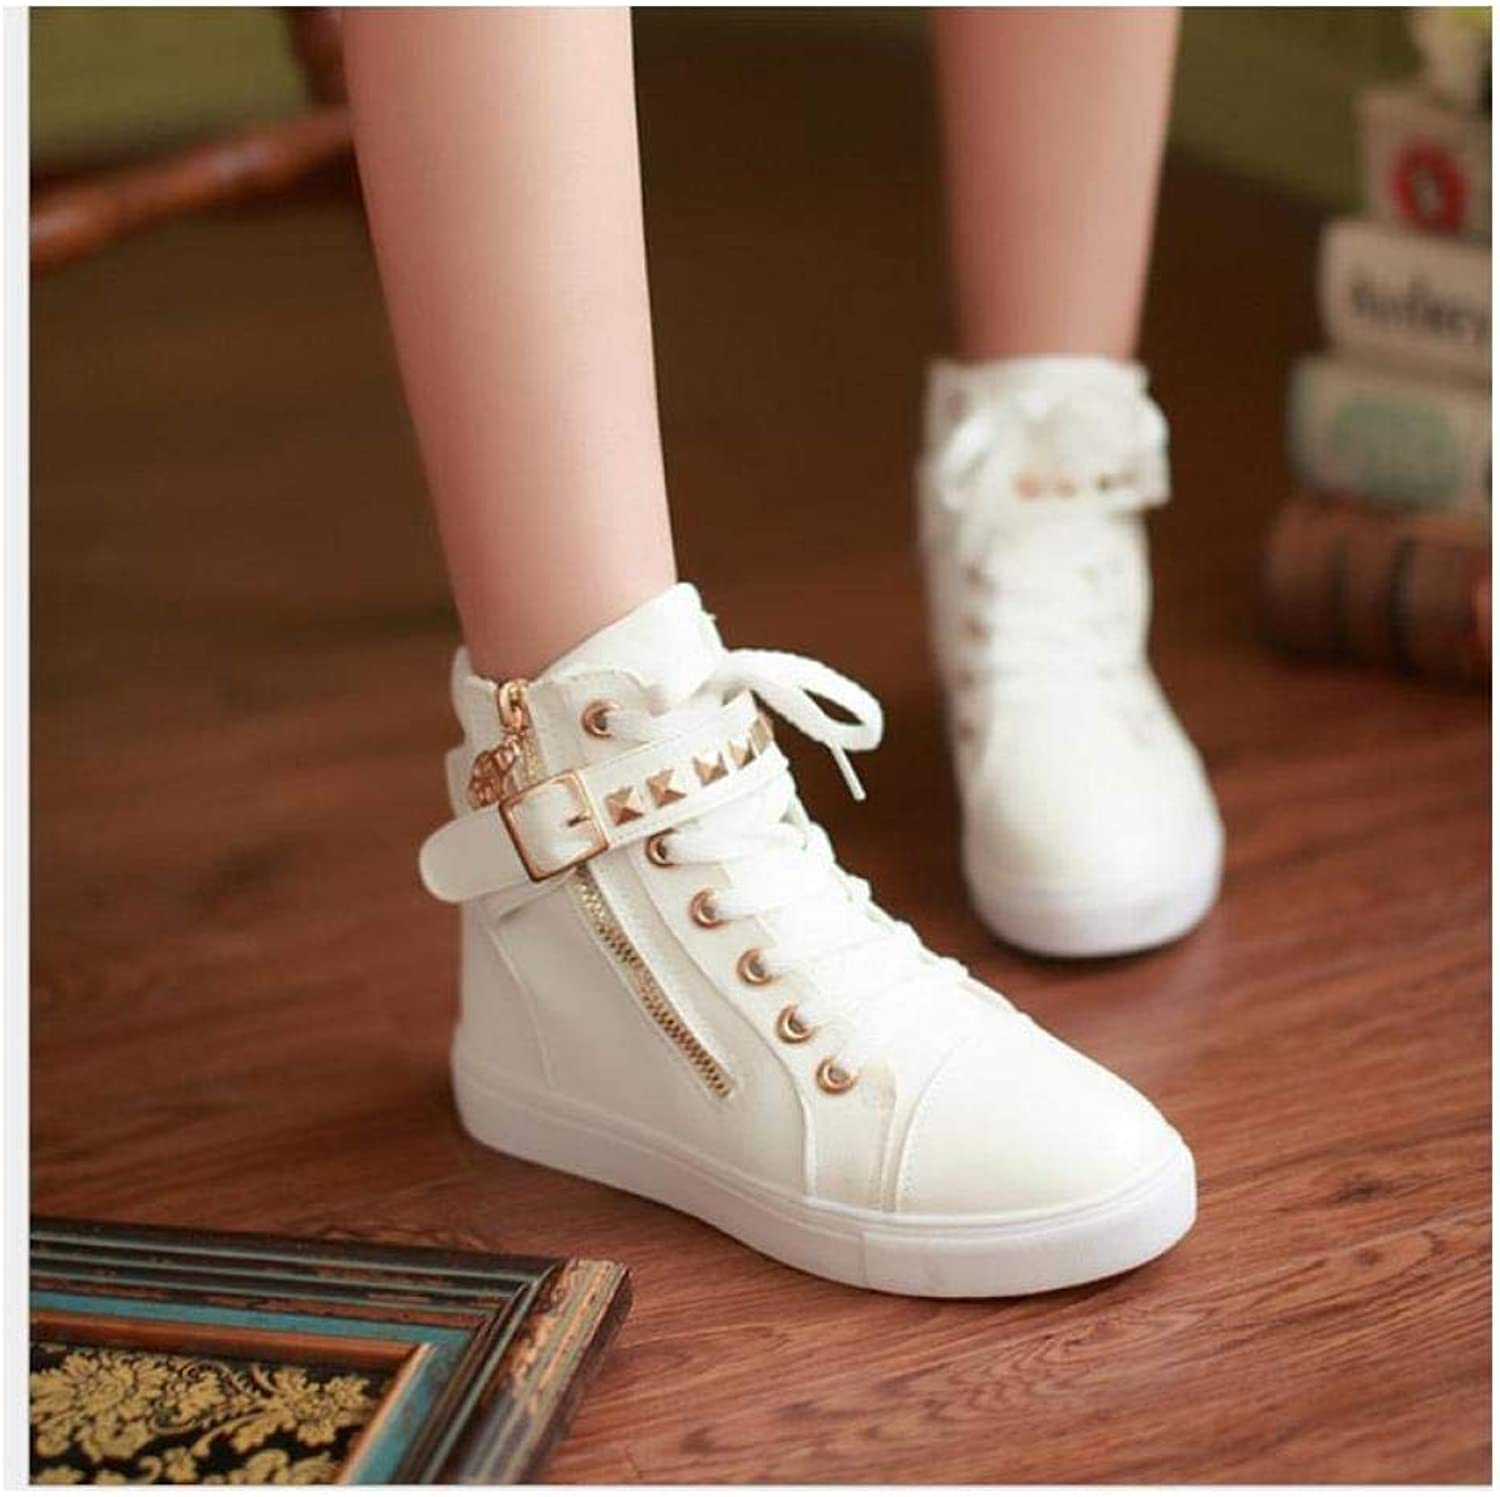 FidgetFidget Womens Sport shoes Casual Breathable Sneakers Running Athletic shoes